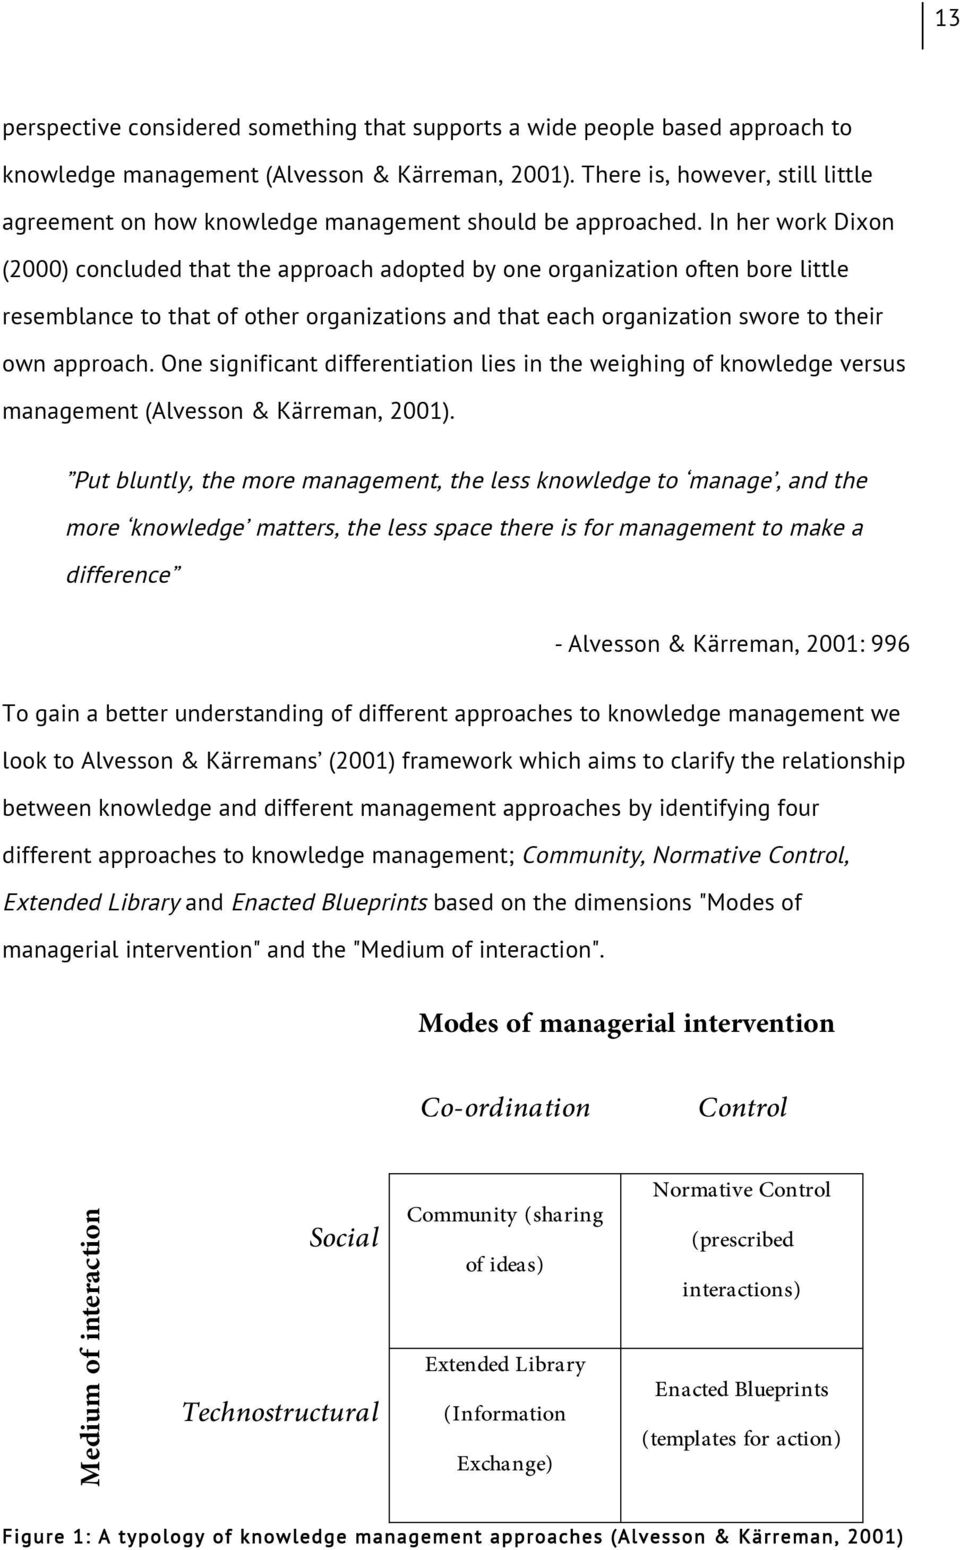 In her work Dixon (2000) concluded that the approach adopted by one organization often bore little resemblance to that of other organizations and that each organization swore to their own approach.